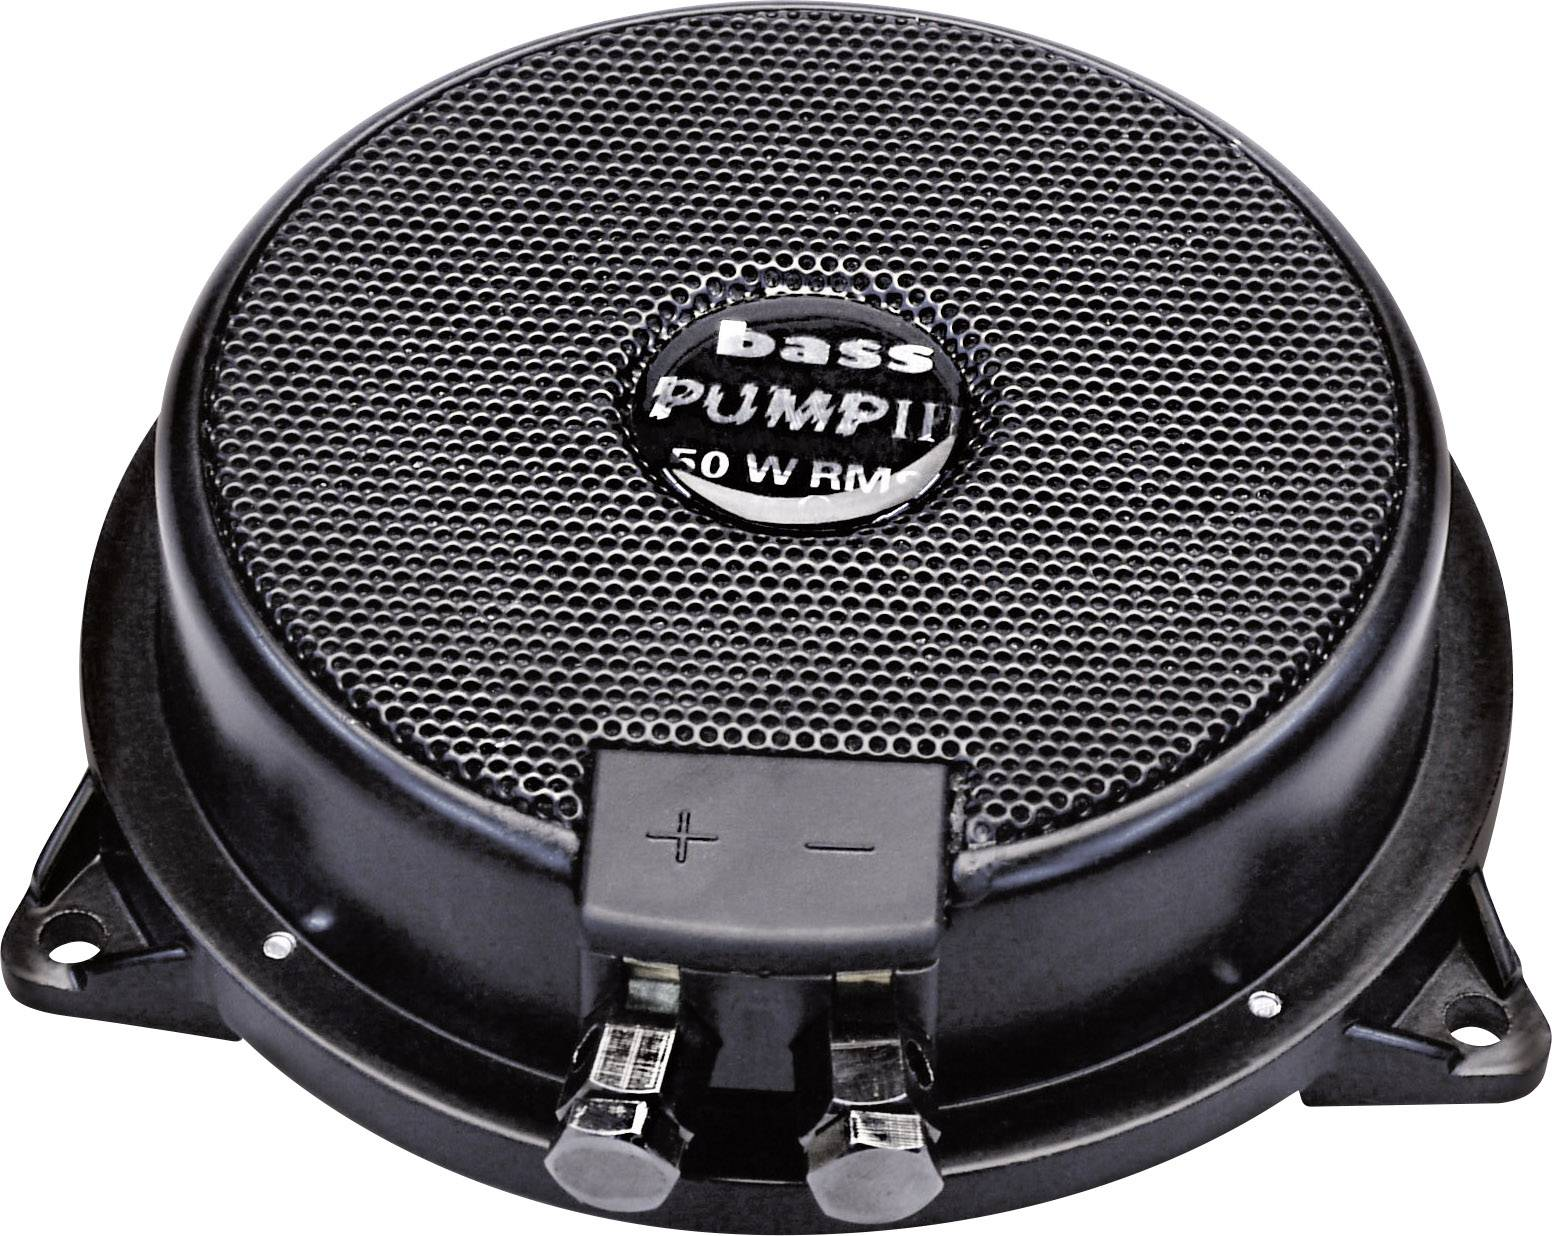 Pasívny subwoofer do auta Sinuslive Bass-Pump III, 130 mm, 8 Ohm, 80 W